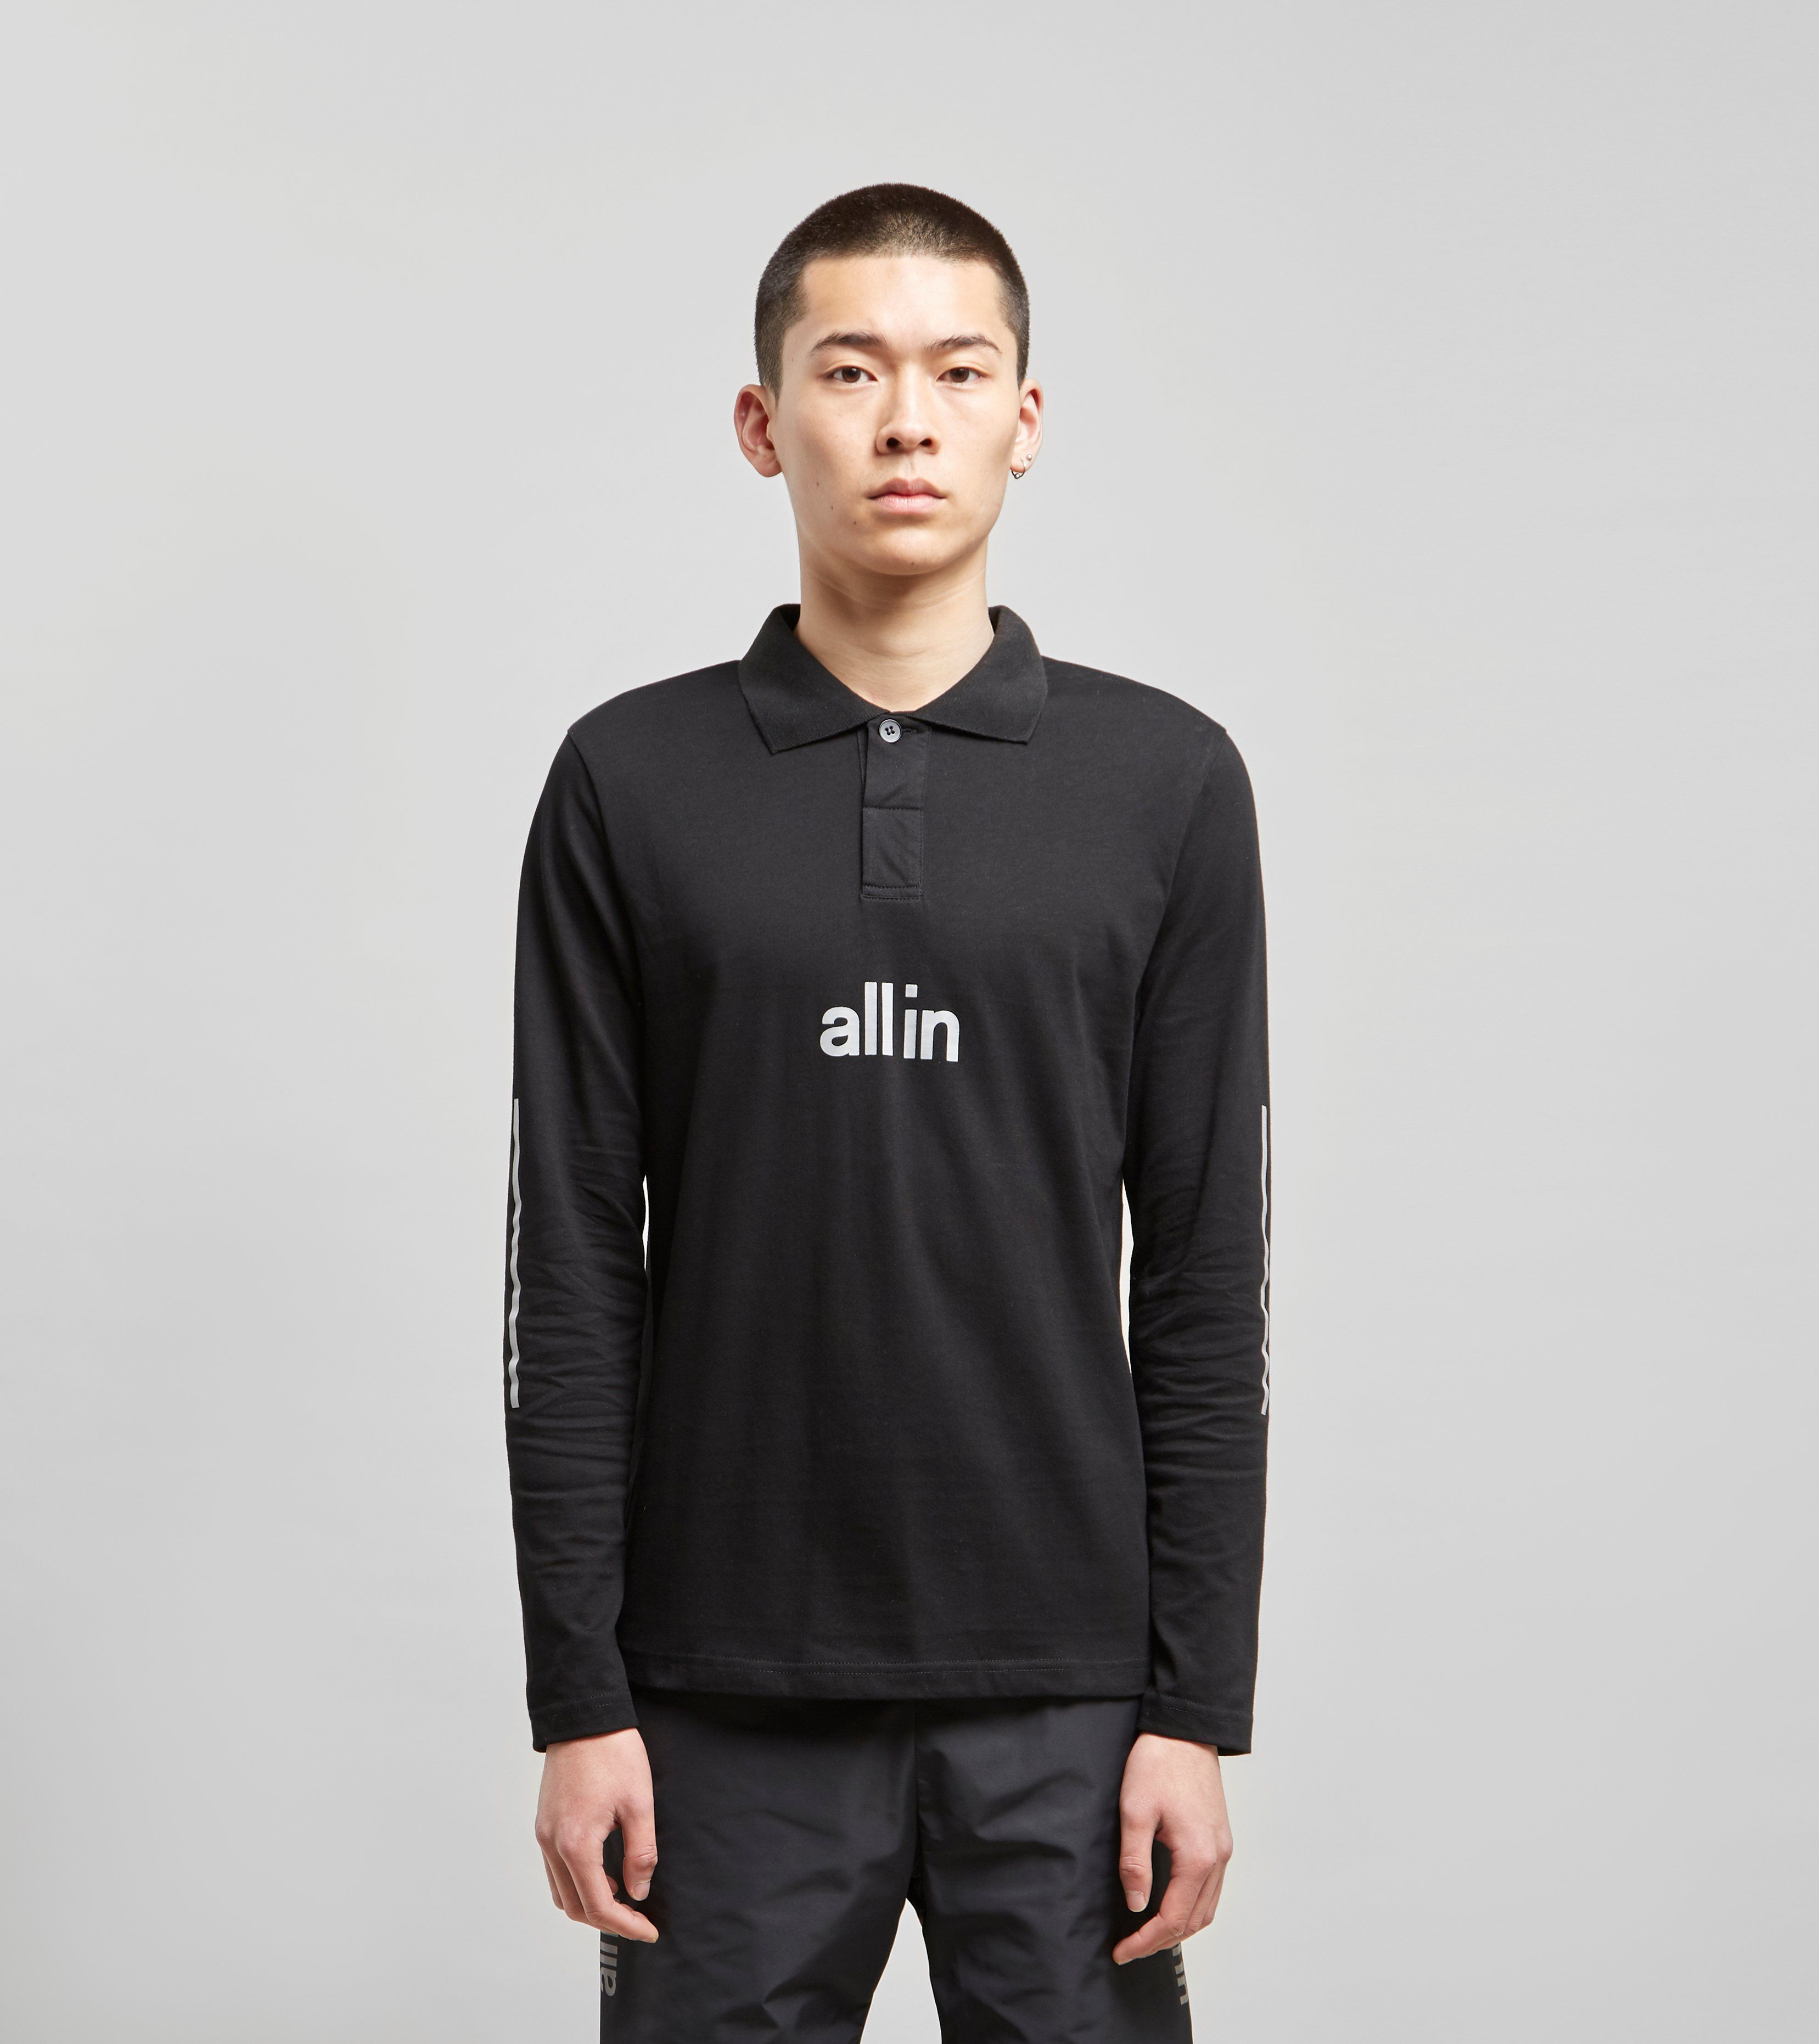 all in Tennis Long Sleeve Polo Shirt